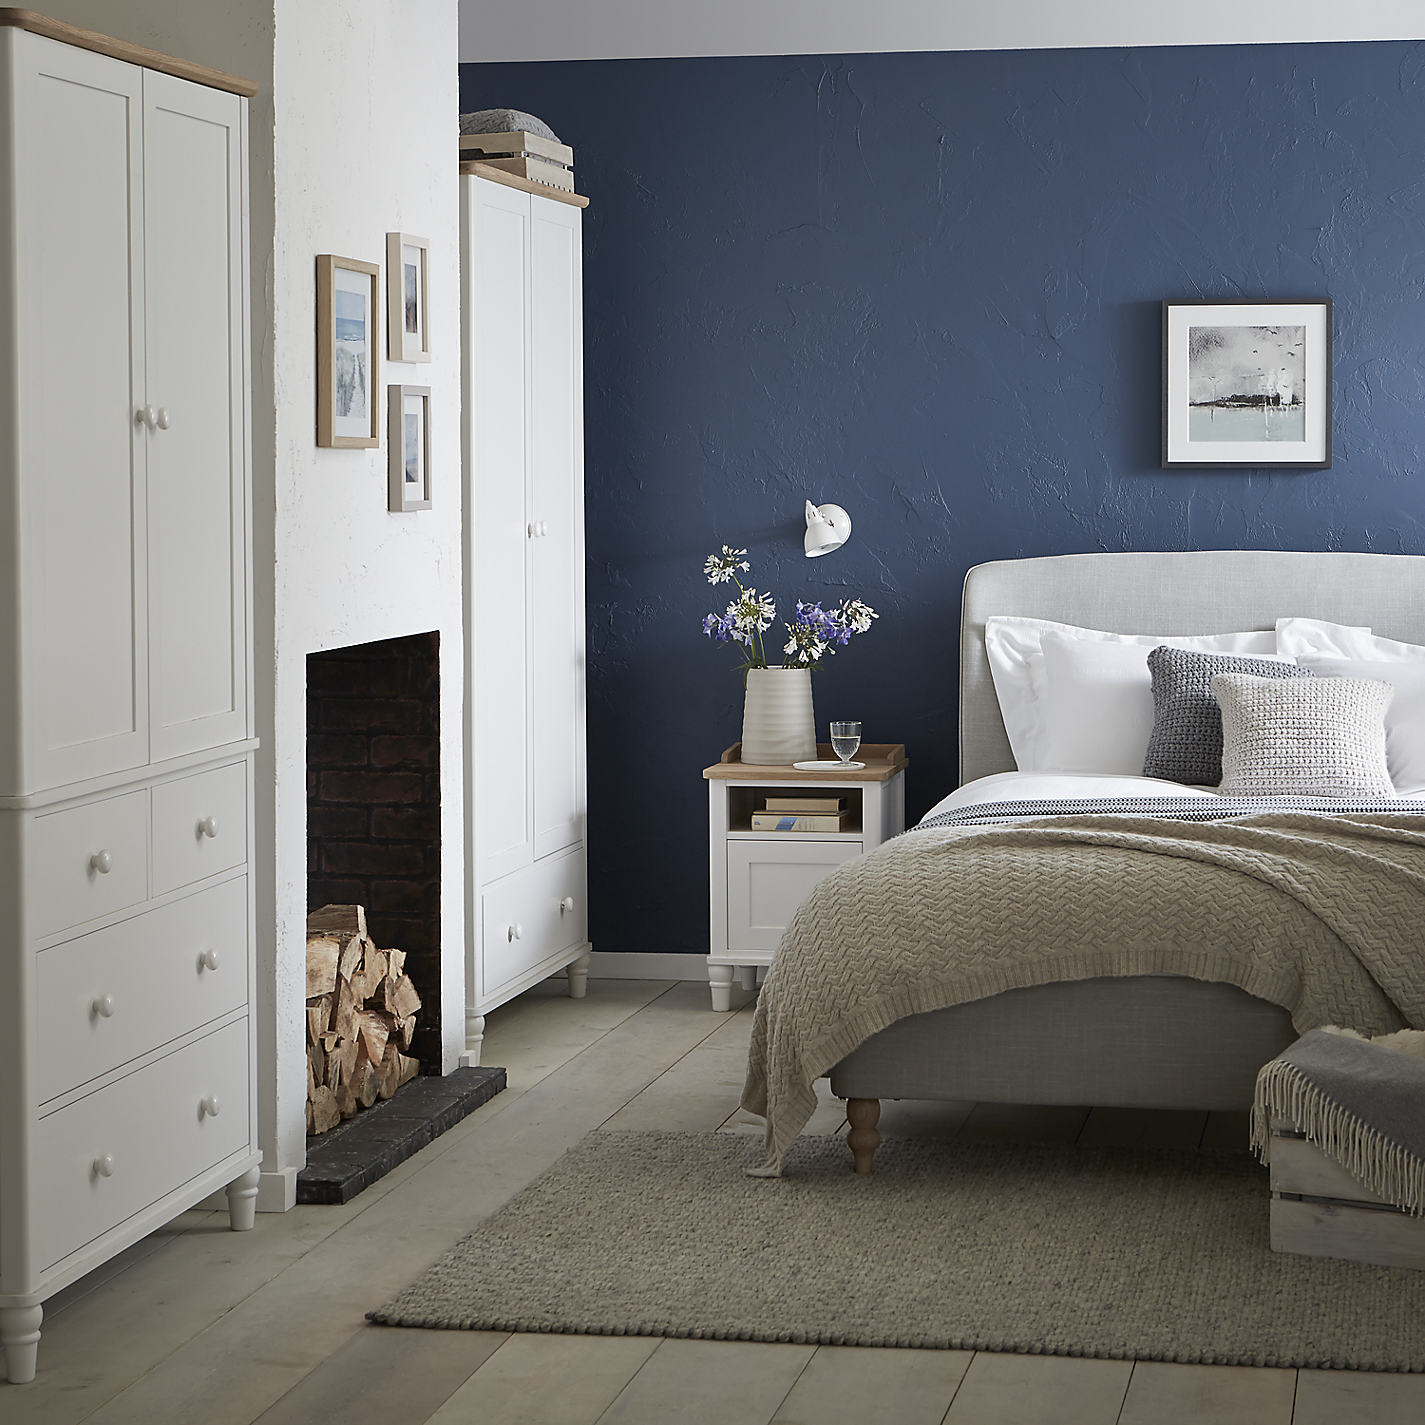 Bedroom Furniture John Lewis buy john lewis croft collection skye bed frame, double | john lewis